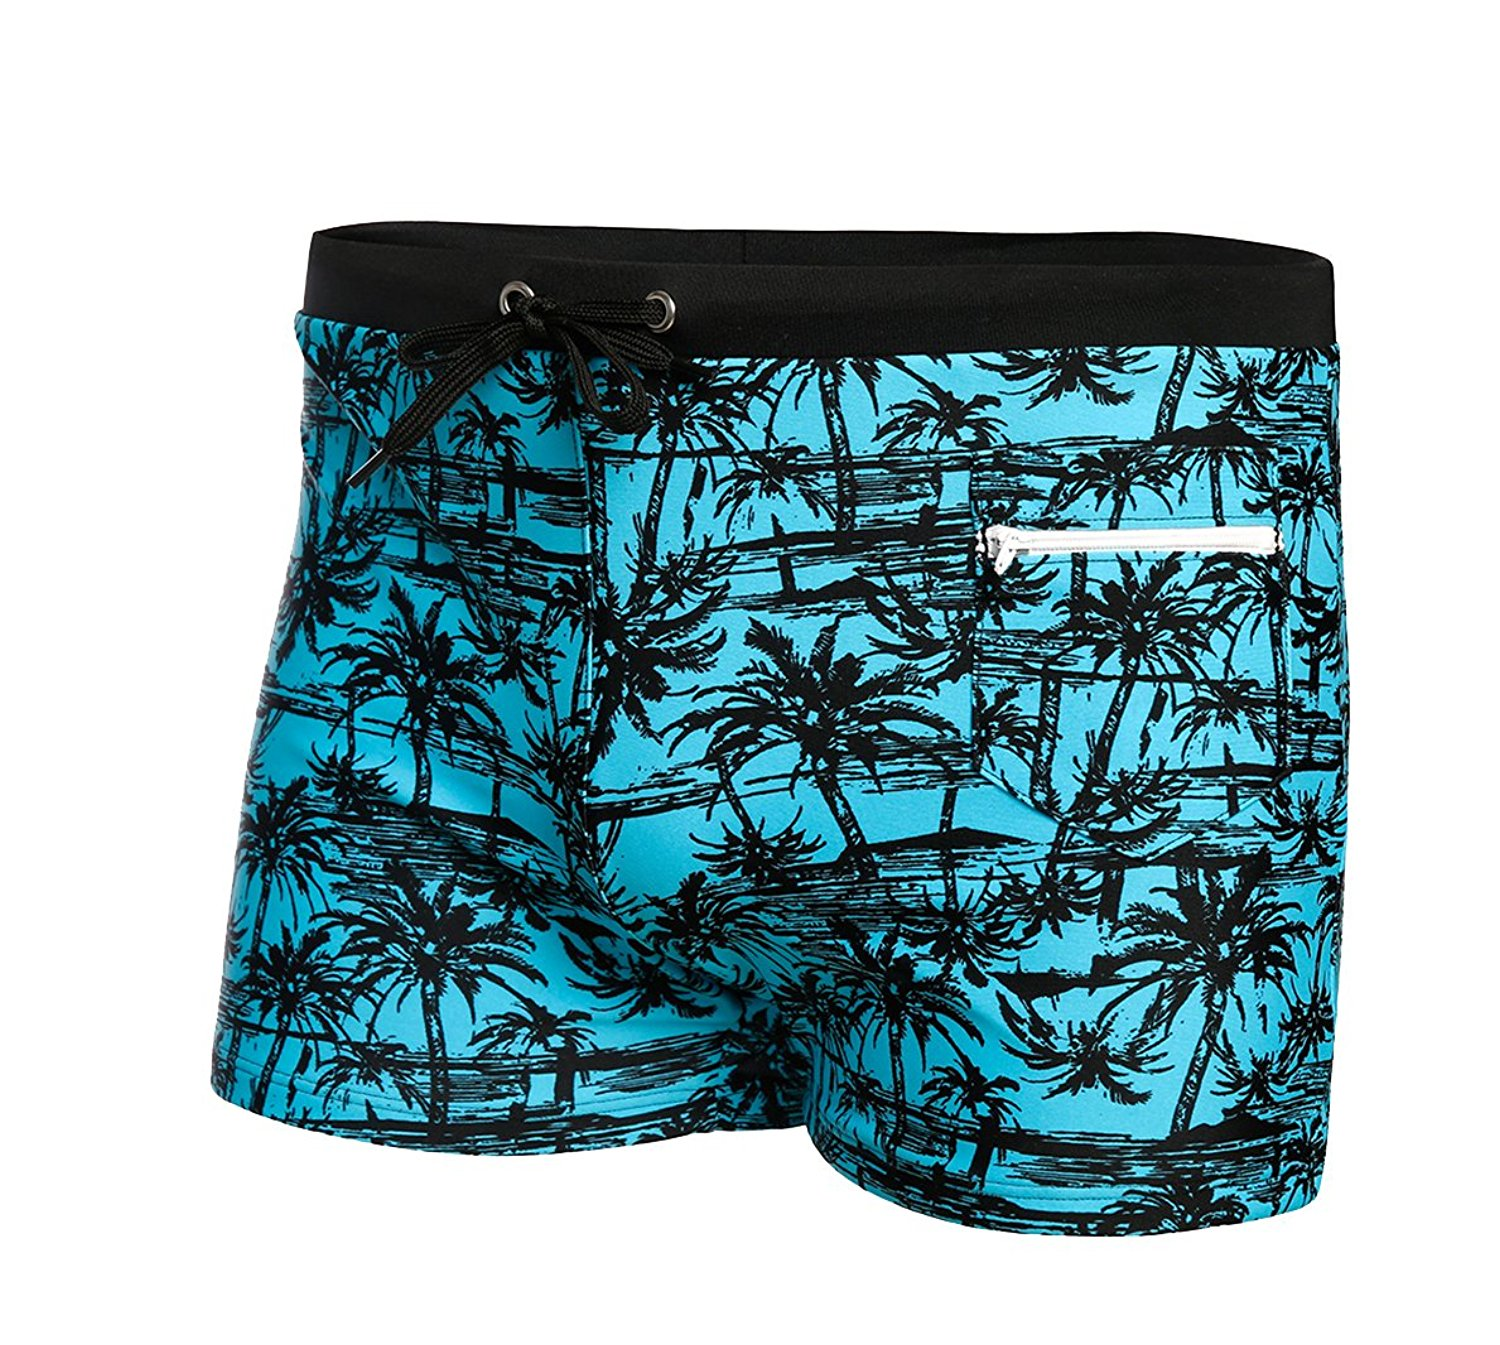 739f6e16fc94 Get Quotations · BELLOO Mens Printed Swim Breifs Boxer With Zipper Pocket